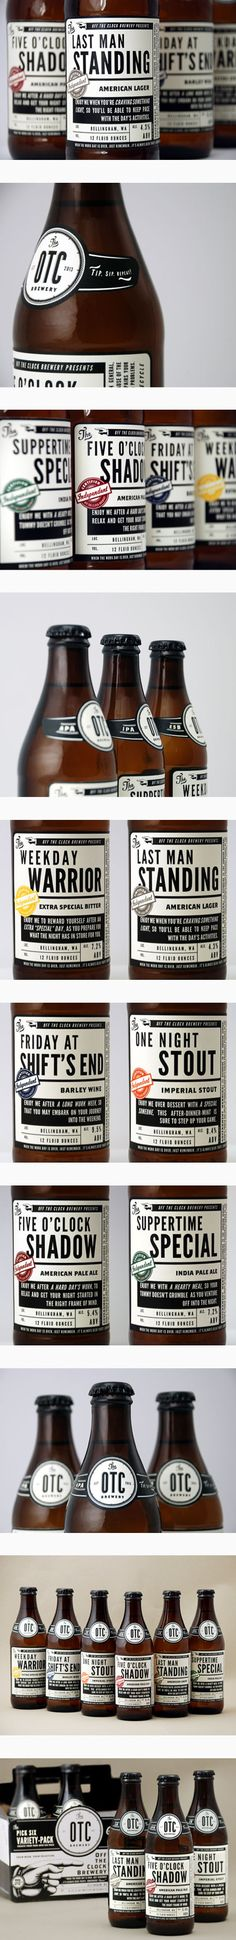 Beer label design | Off The Clock Brewing Company